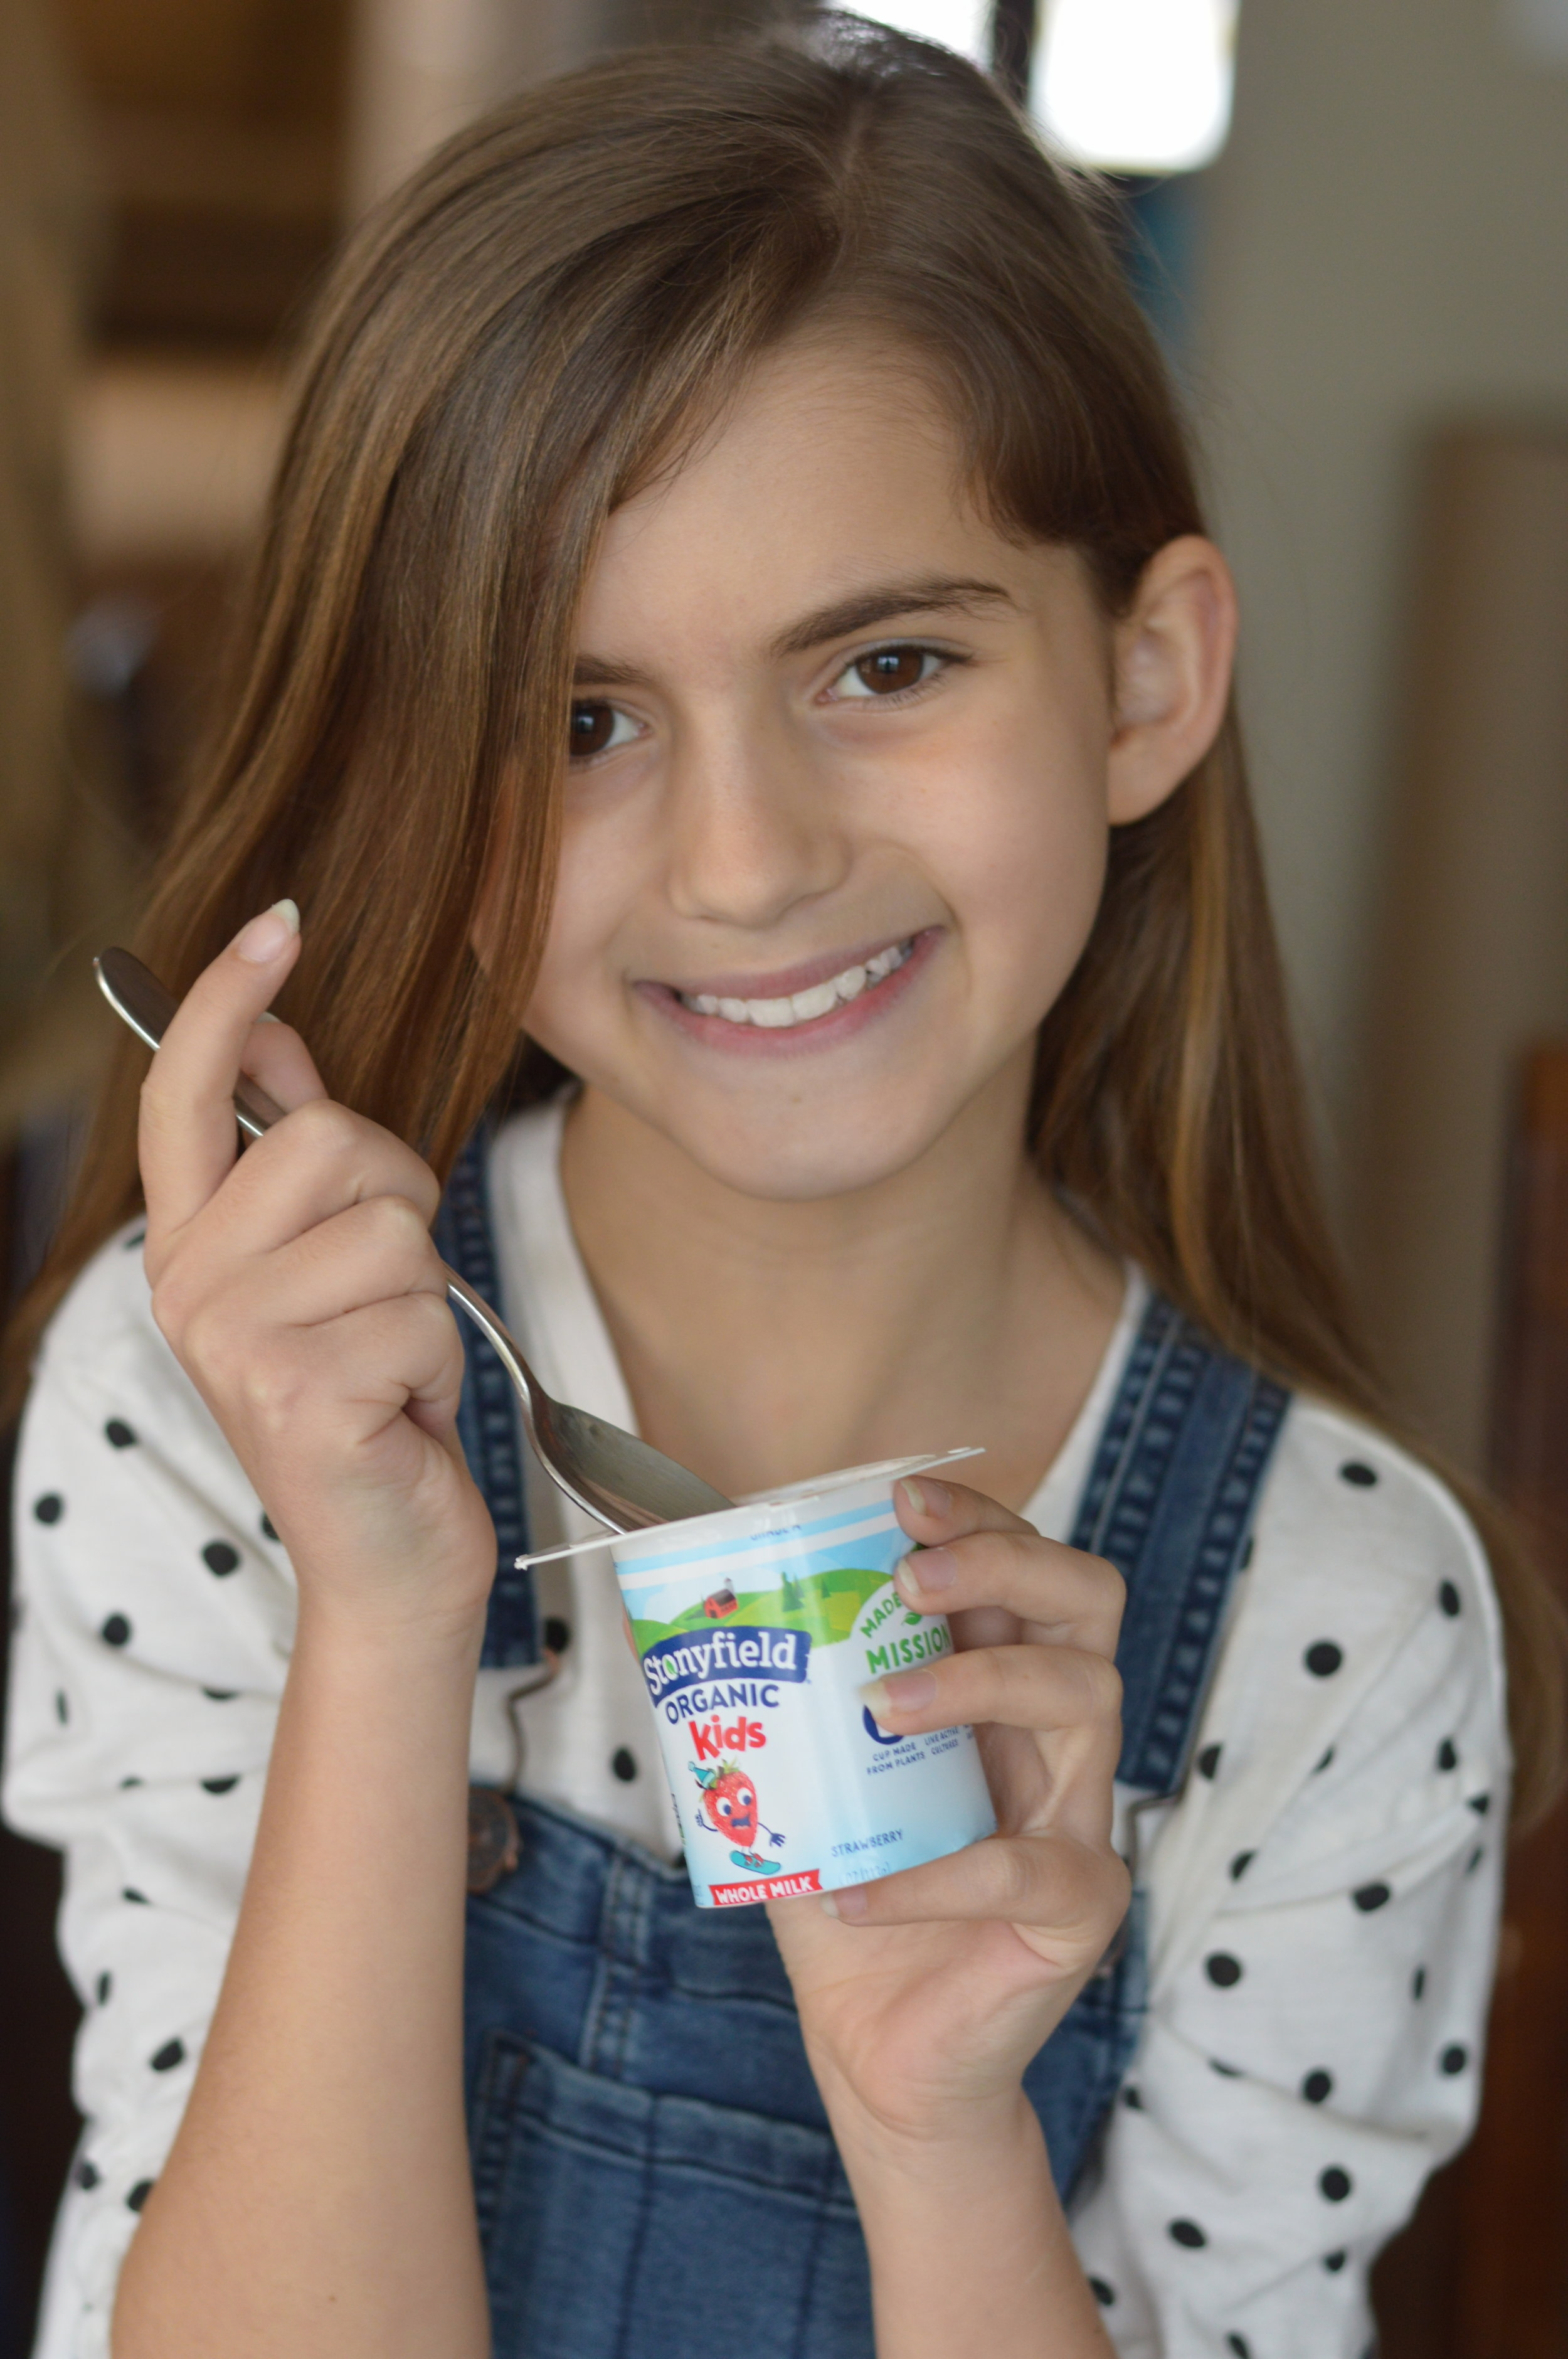 This post is in partnership with Stonyfield.